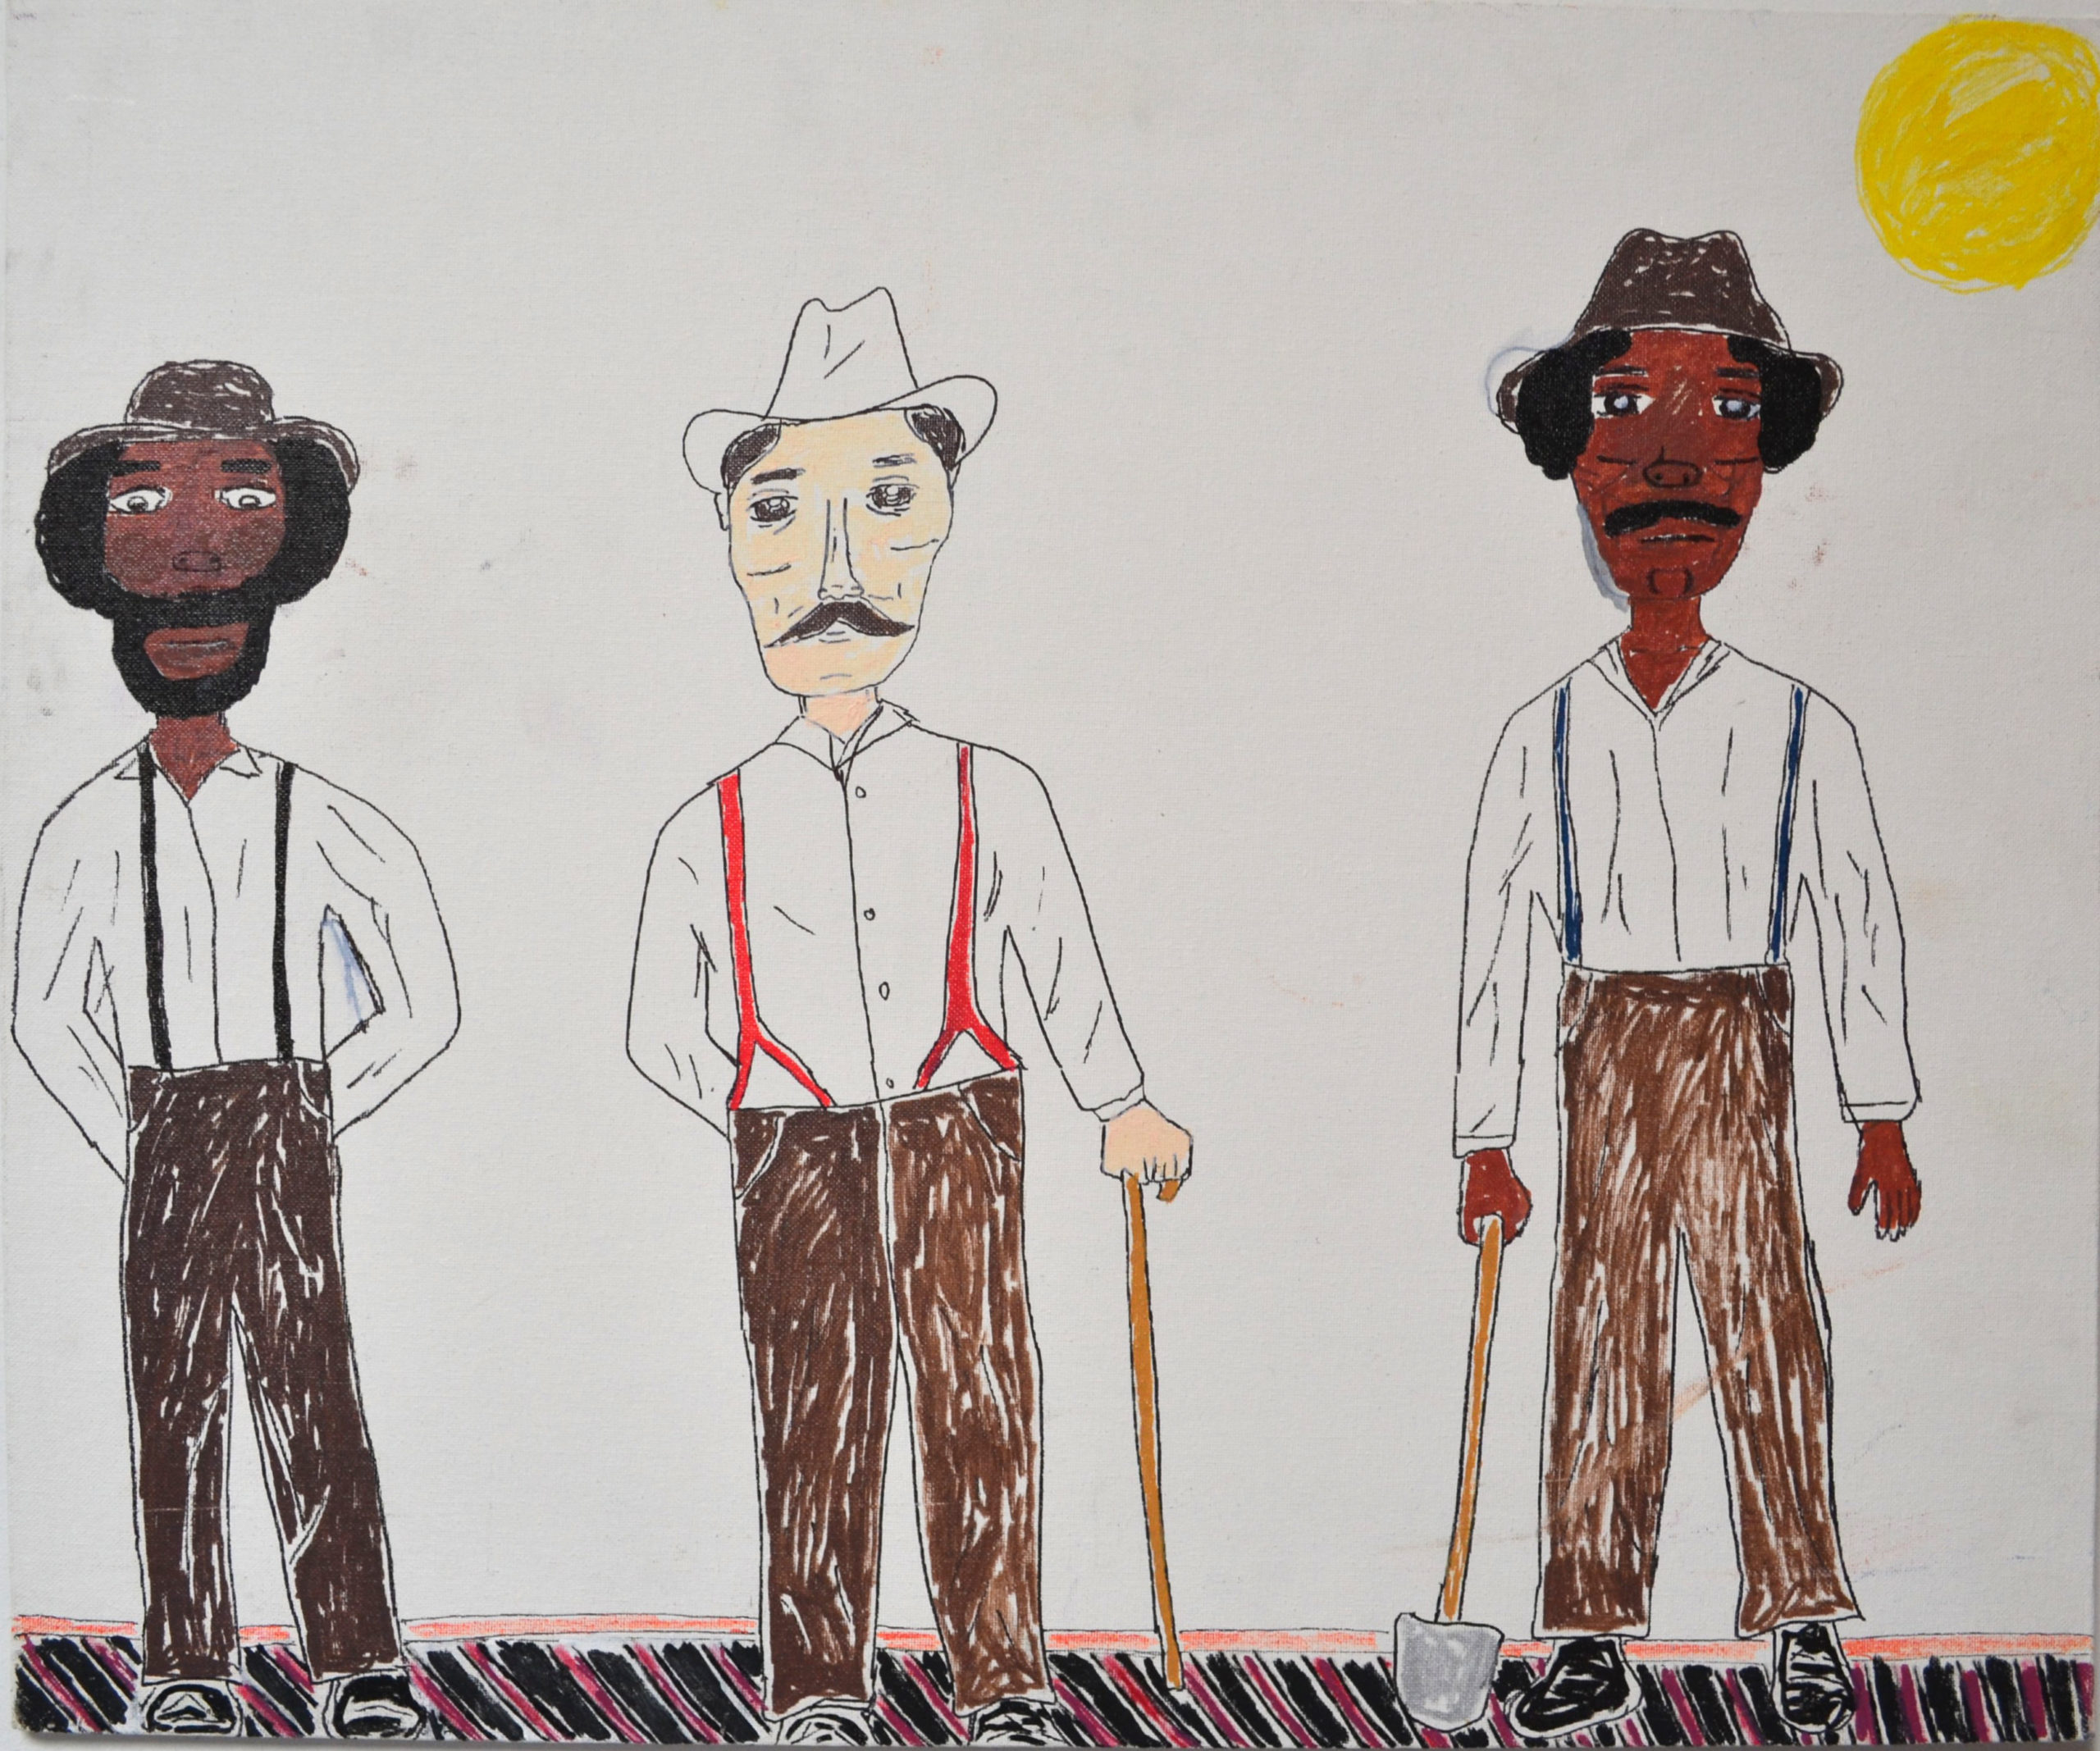 Untitled (3 Guys) By Darryl Brooks